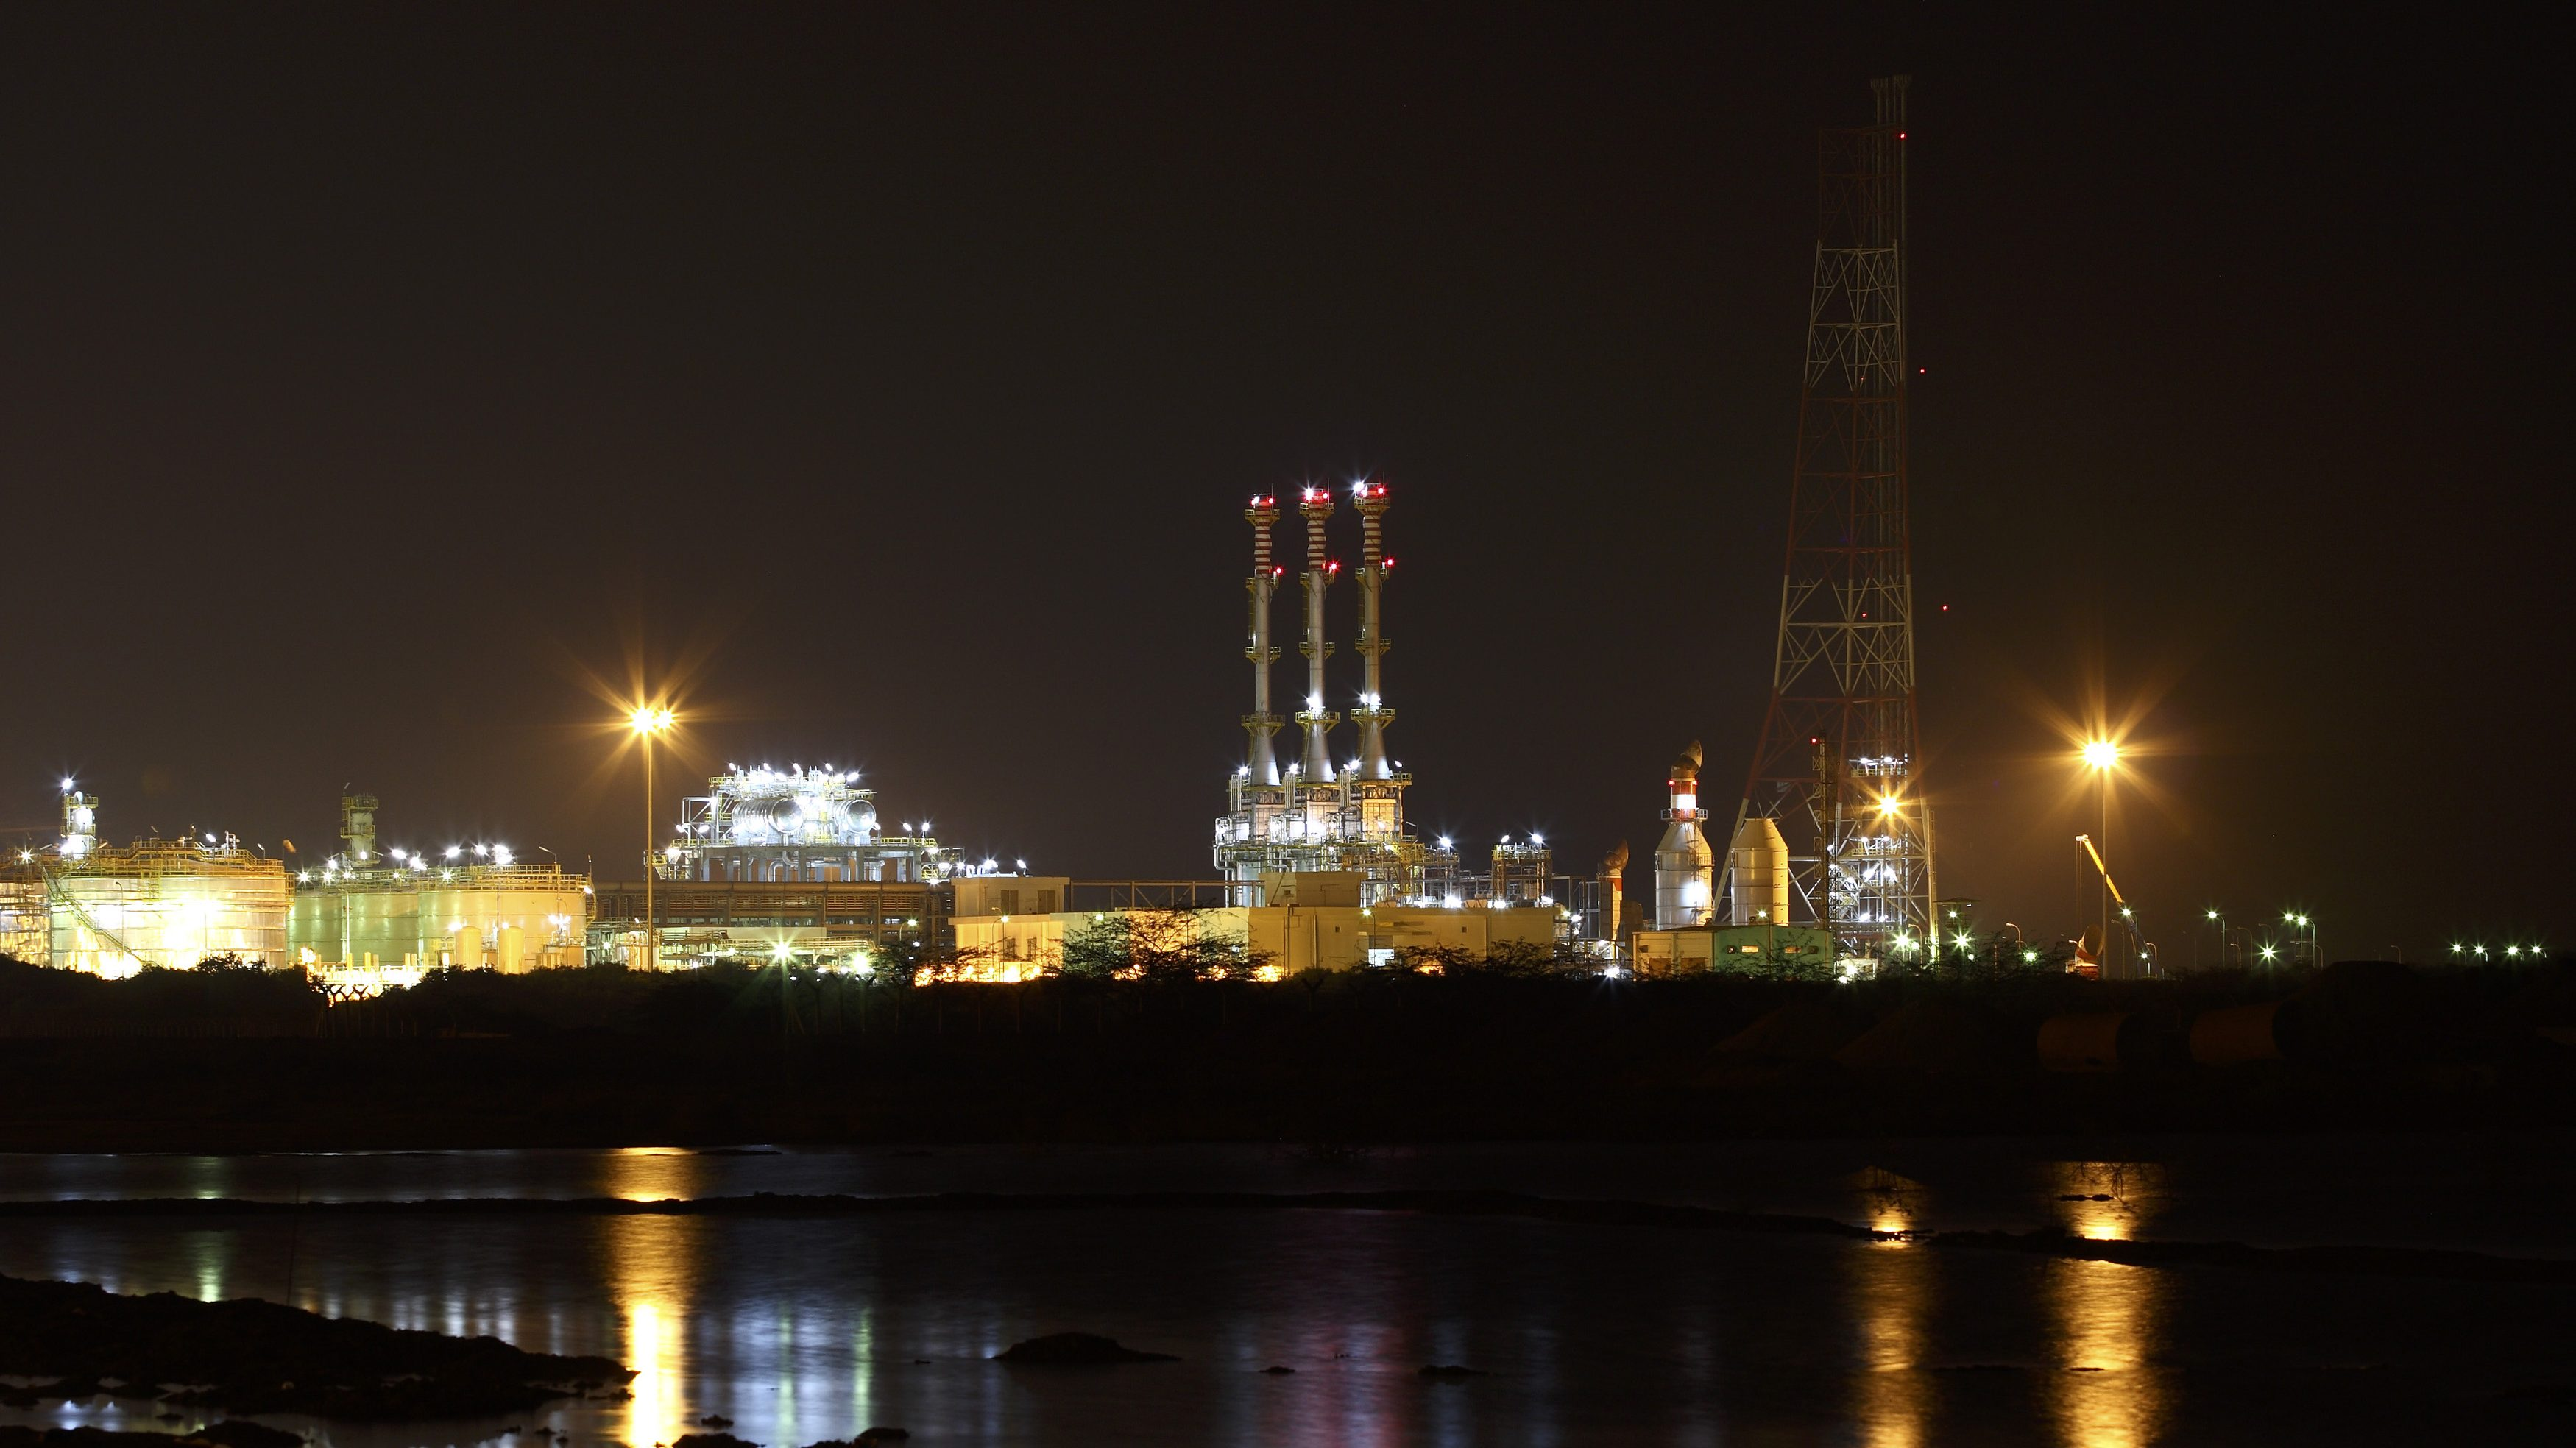 Reliance Industries KG-D6's oil production facility located in the Indian state of Andhra Pradesh